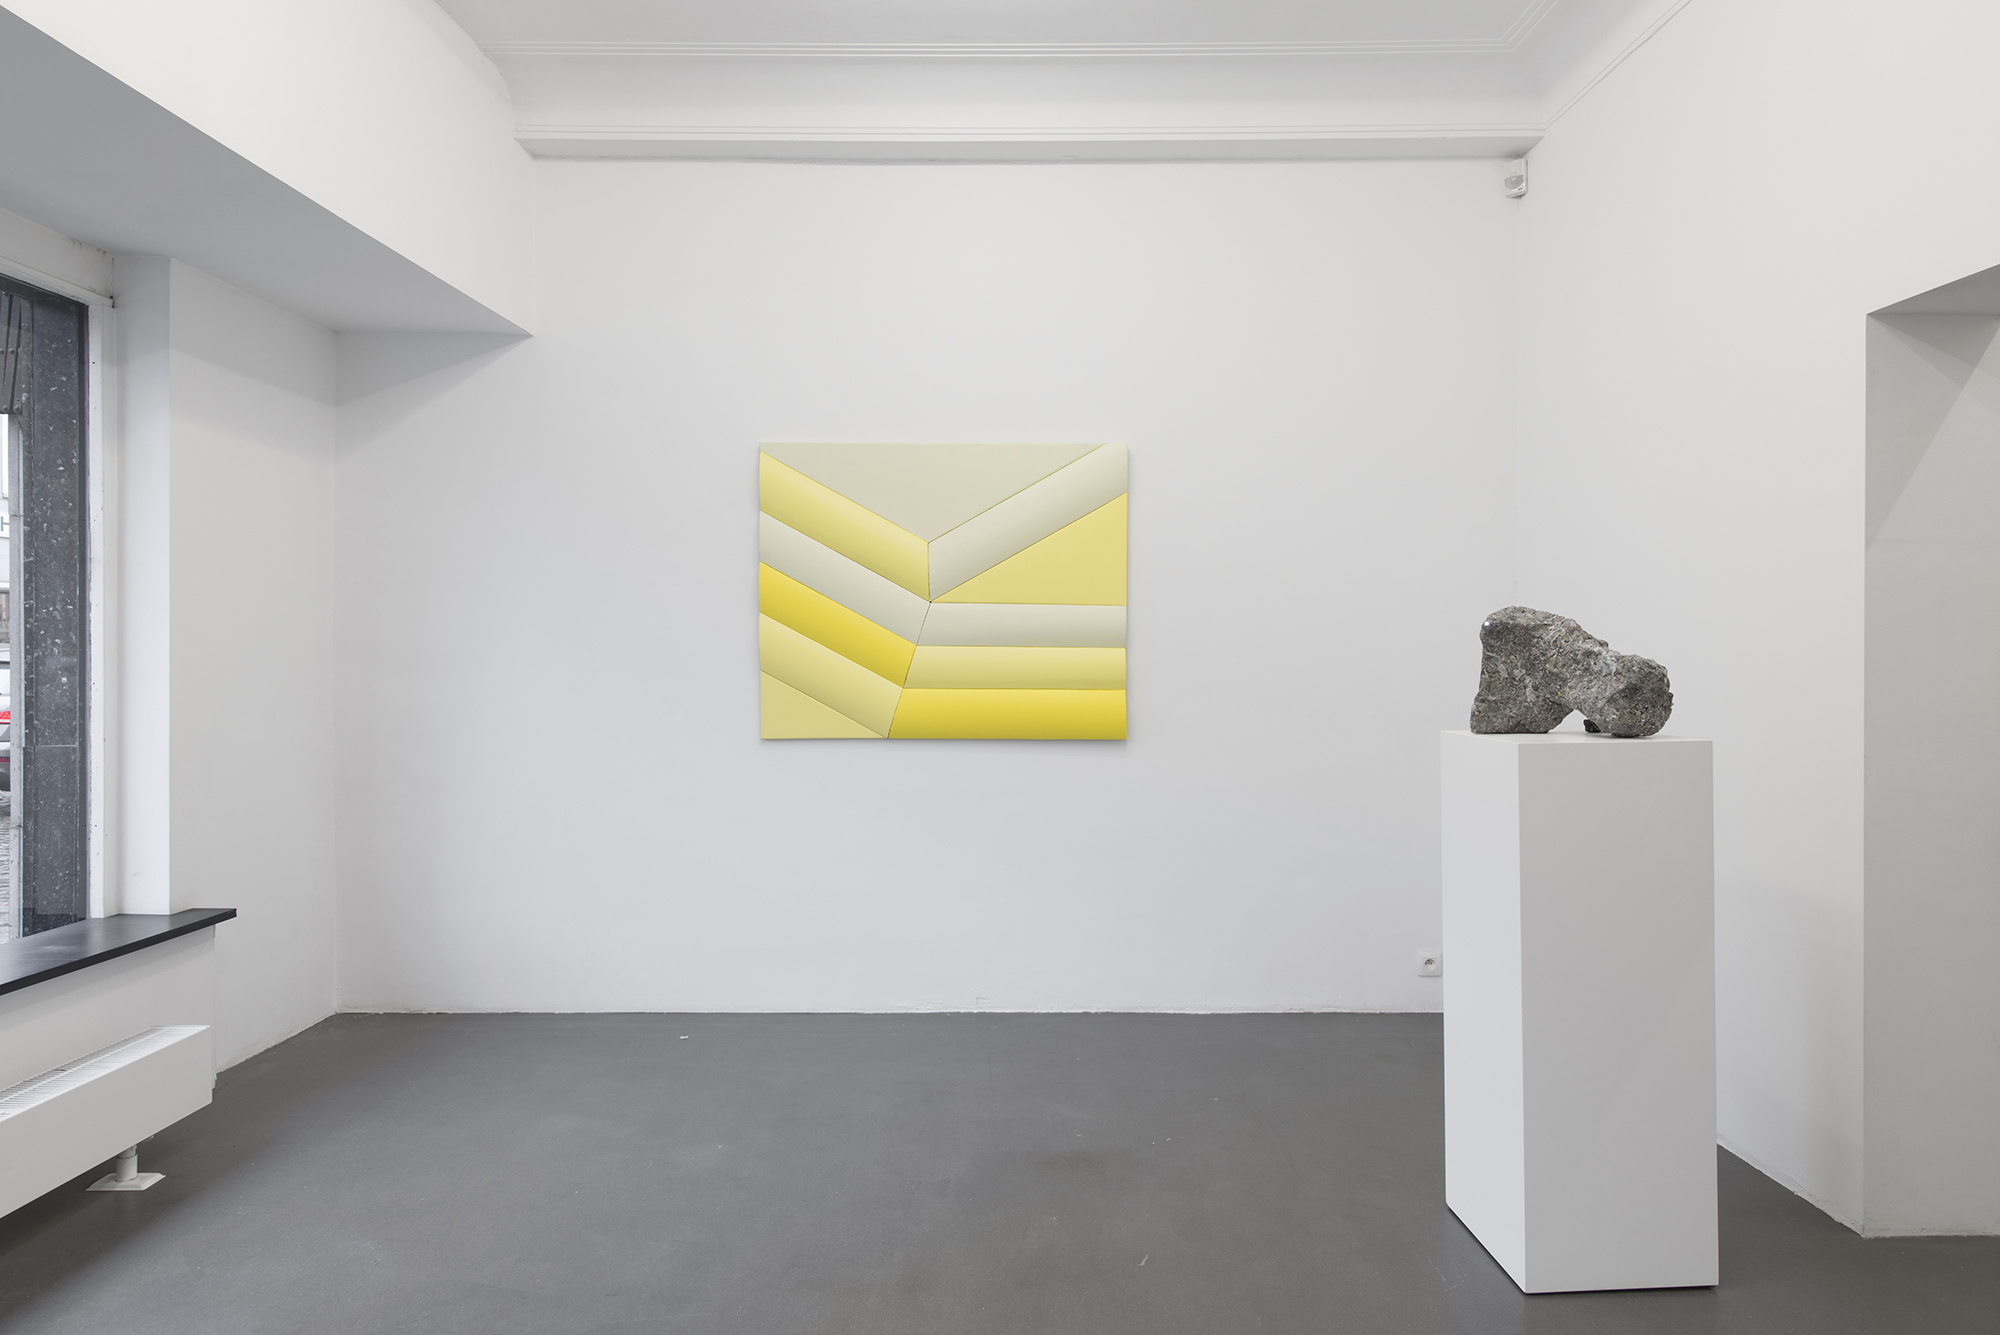 Installation View: Samples, Arcade Brussels